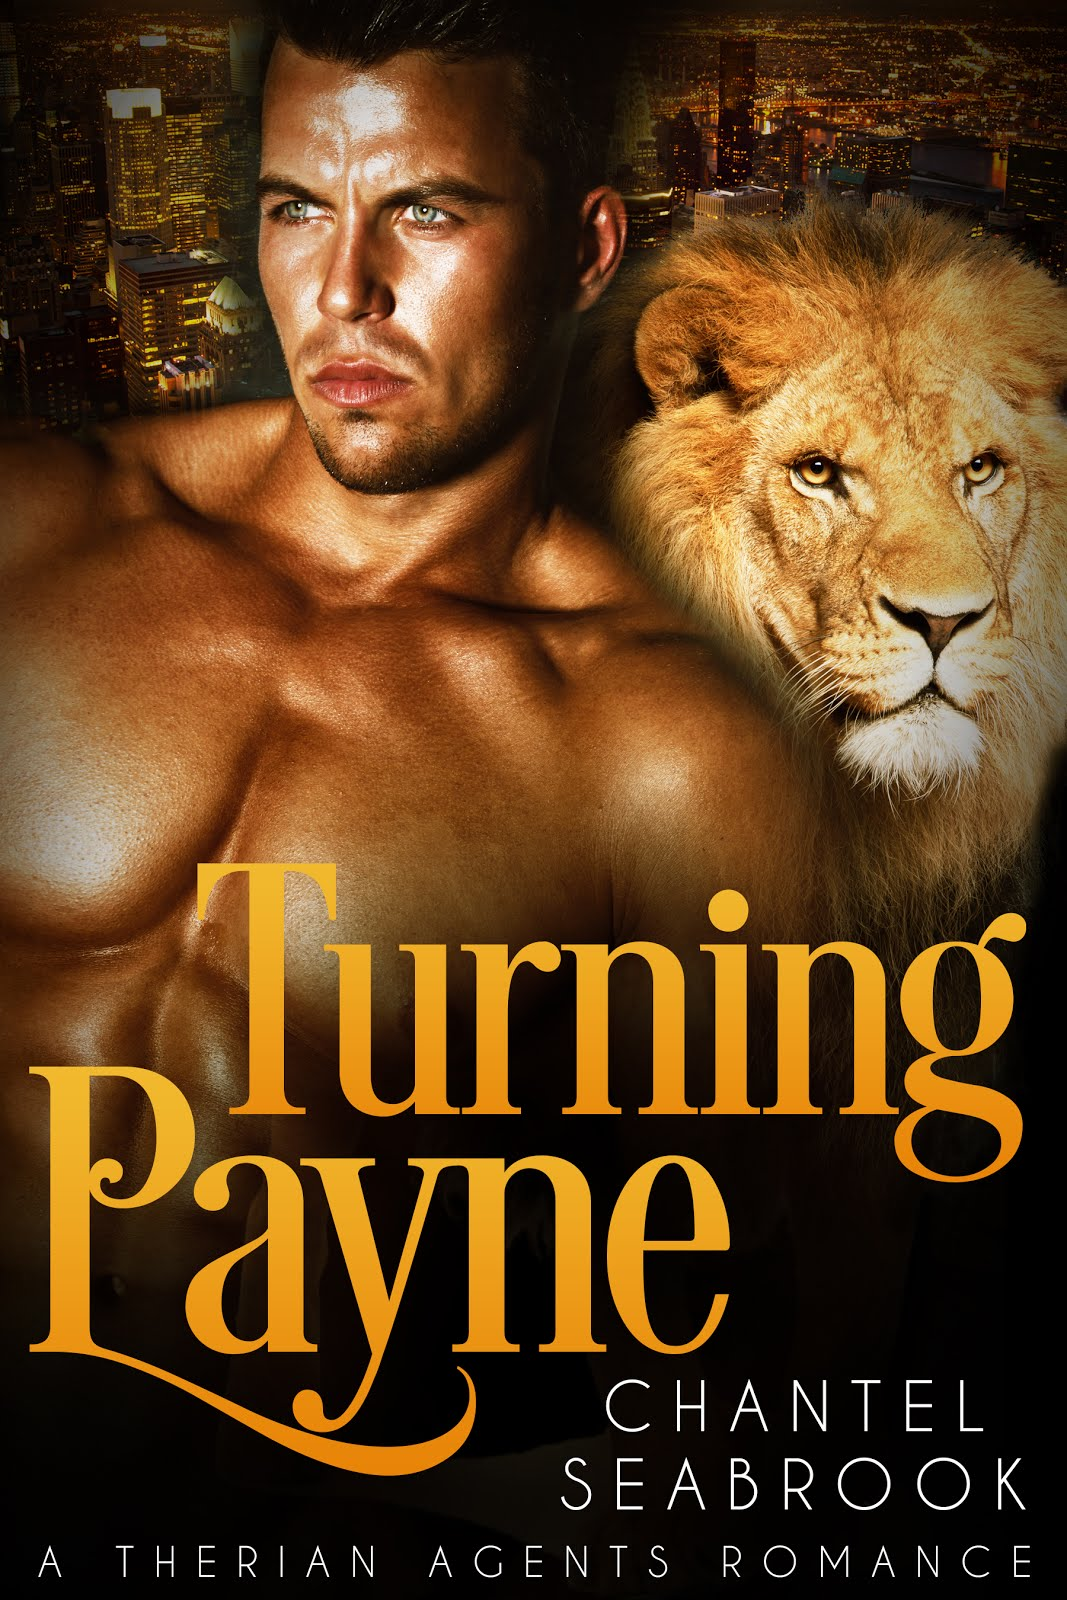 Chantel Seabrook's Turning Payne is a paranormal romance full of sexual tension, action and excitem